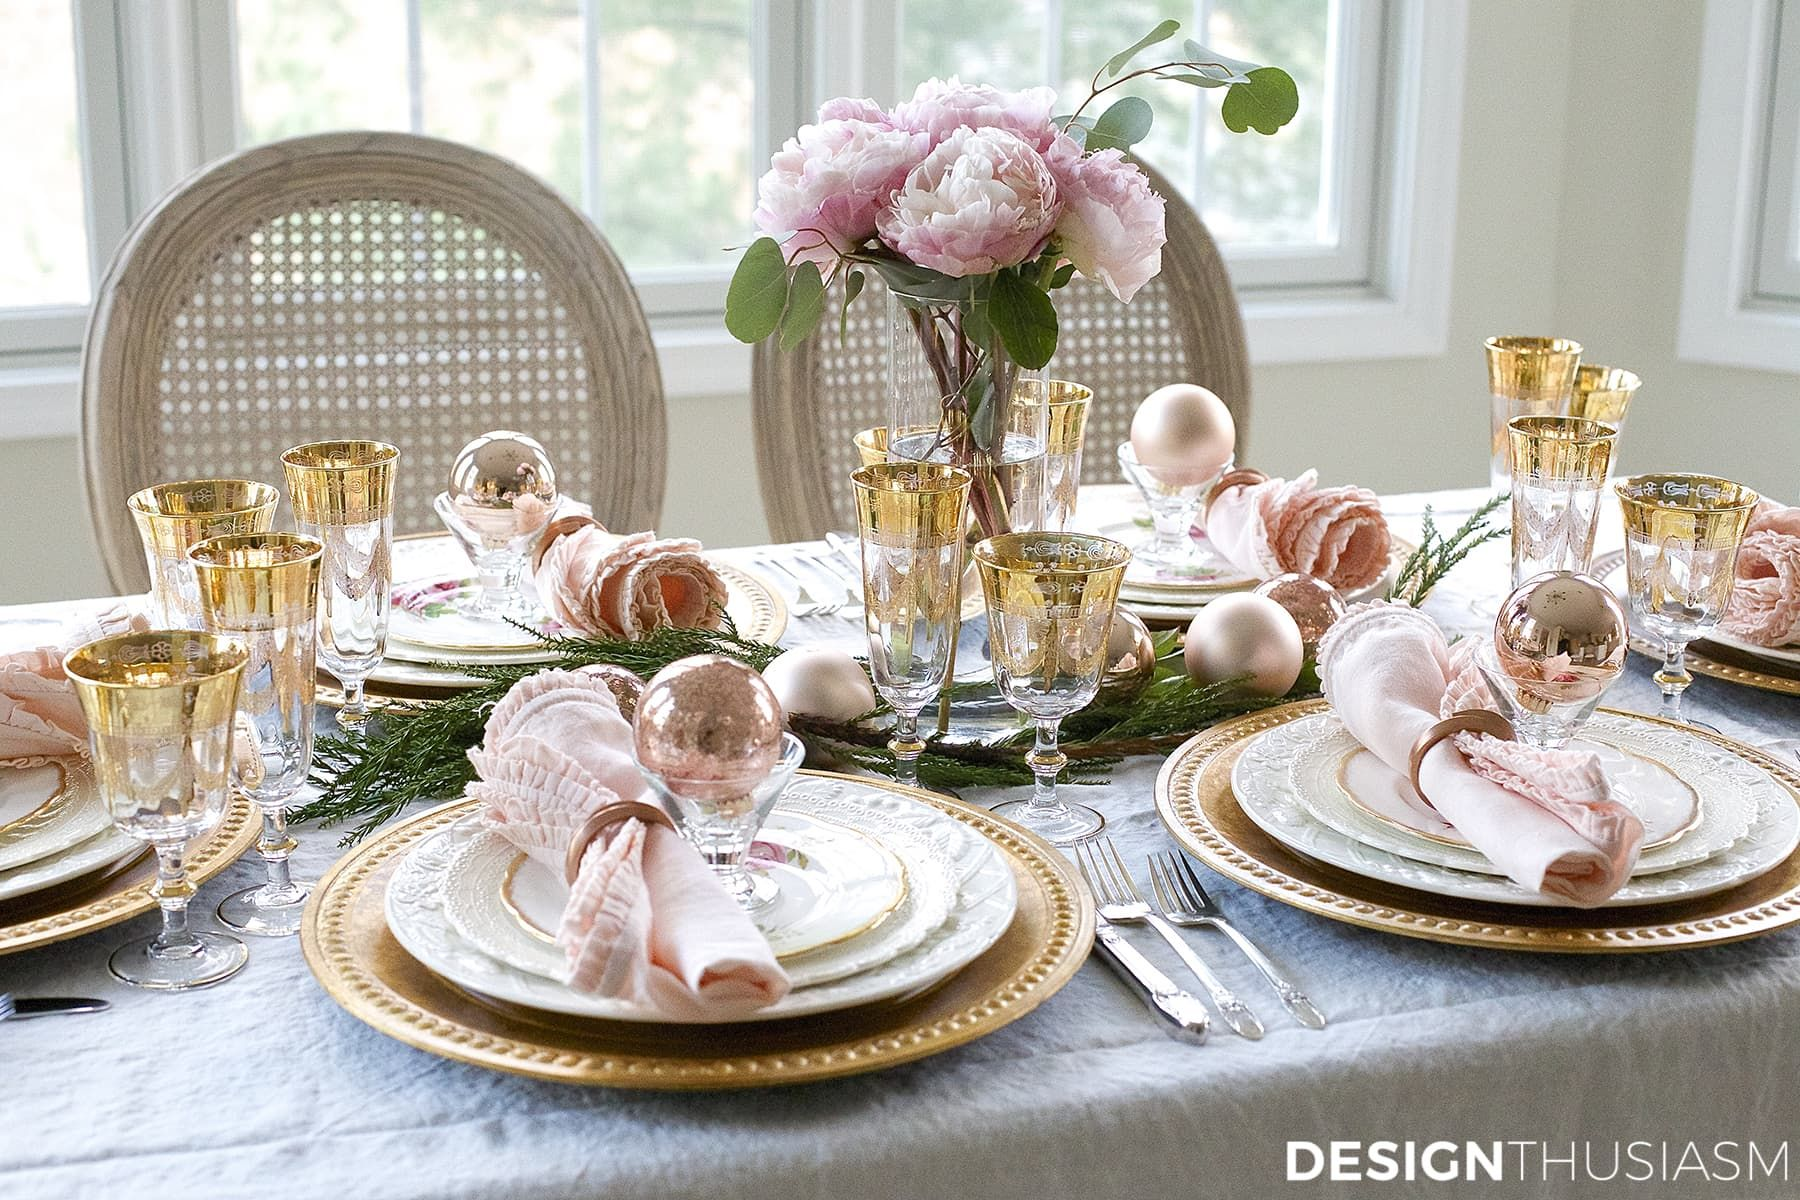 Elegant Christmas Table Setting In Pink And Gold - Designthusiasmcom